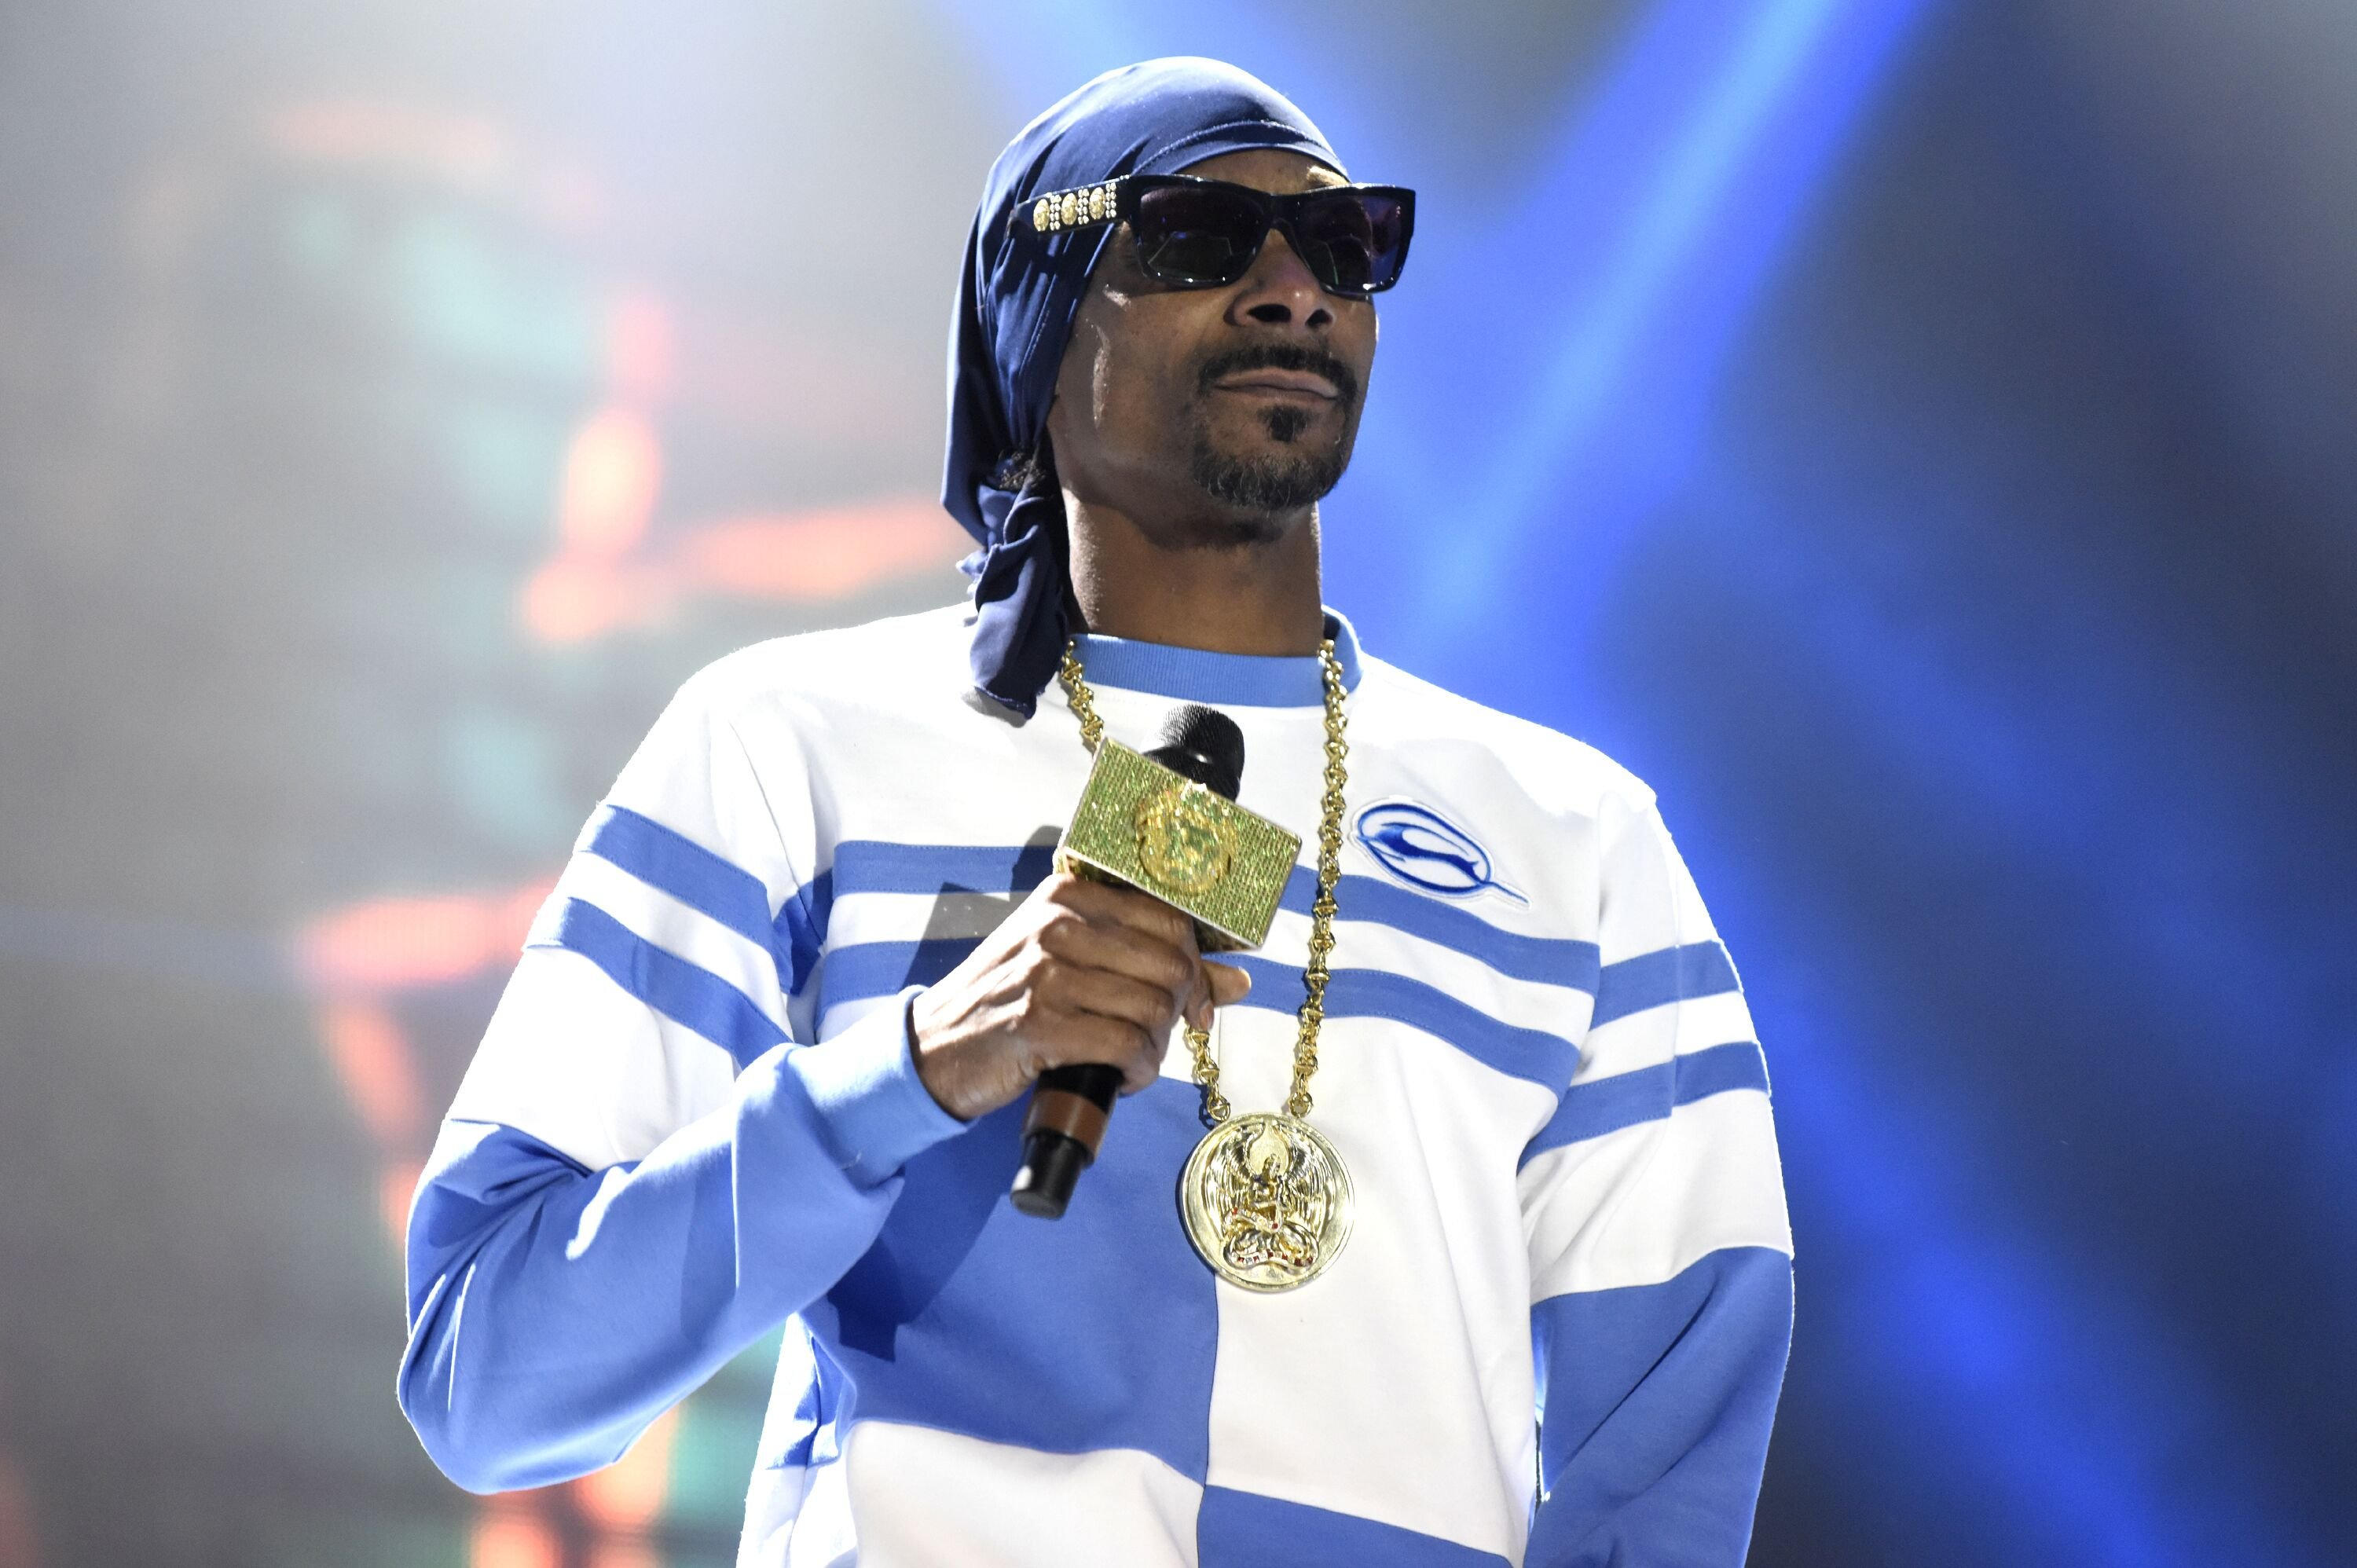 Snoop Dogg at a live performance | Source: Getty Images/GlobalImagesUkraine